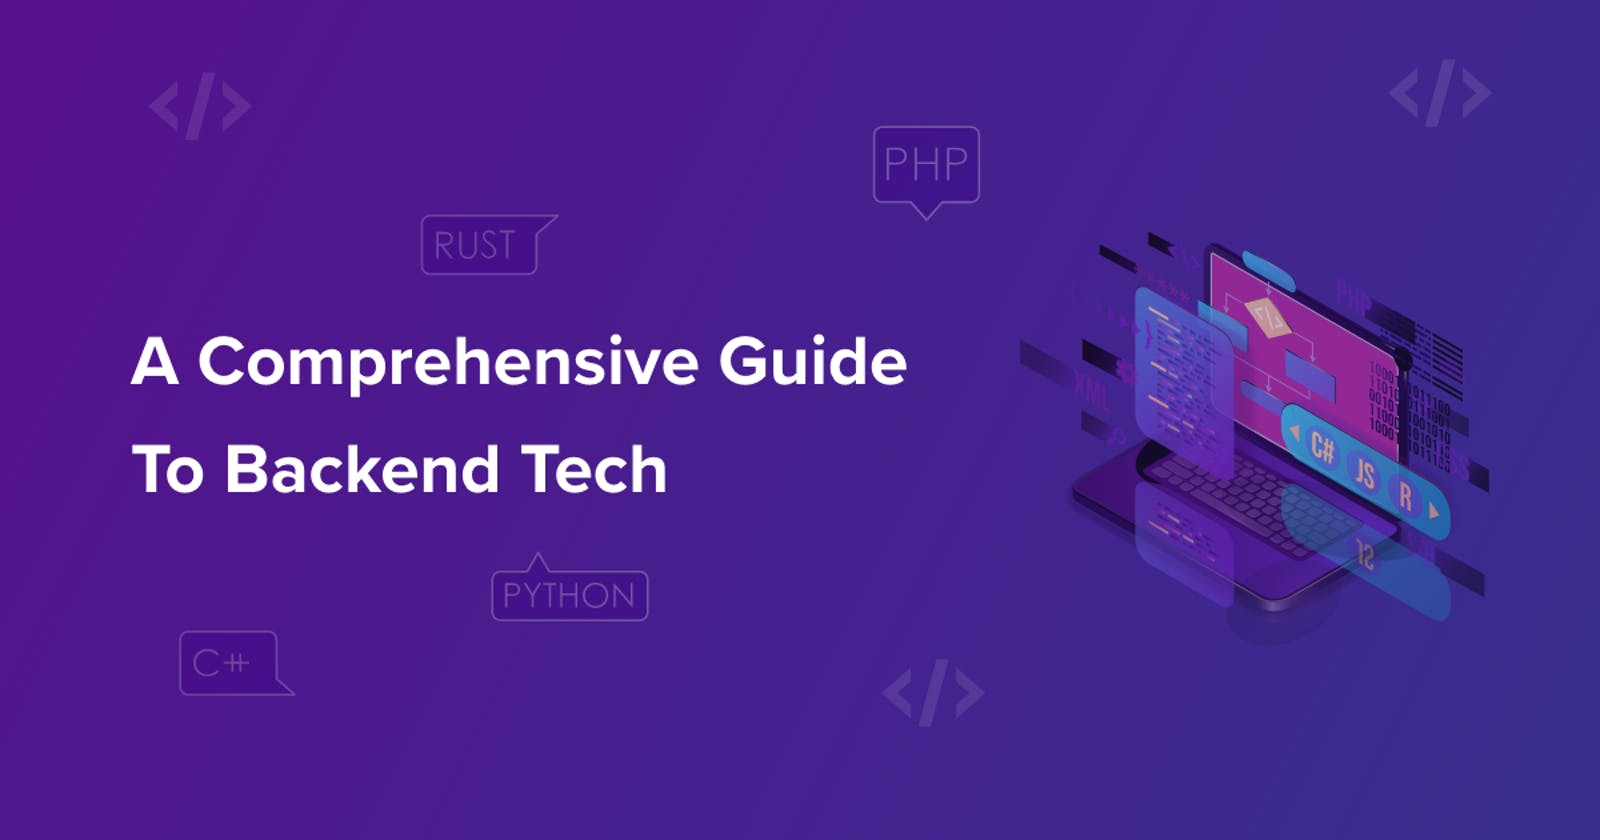 A Comprehensive Guide To Backend Tech